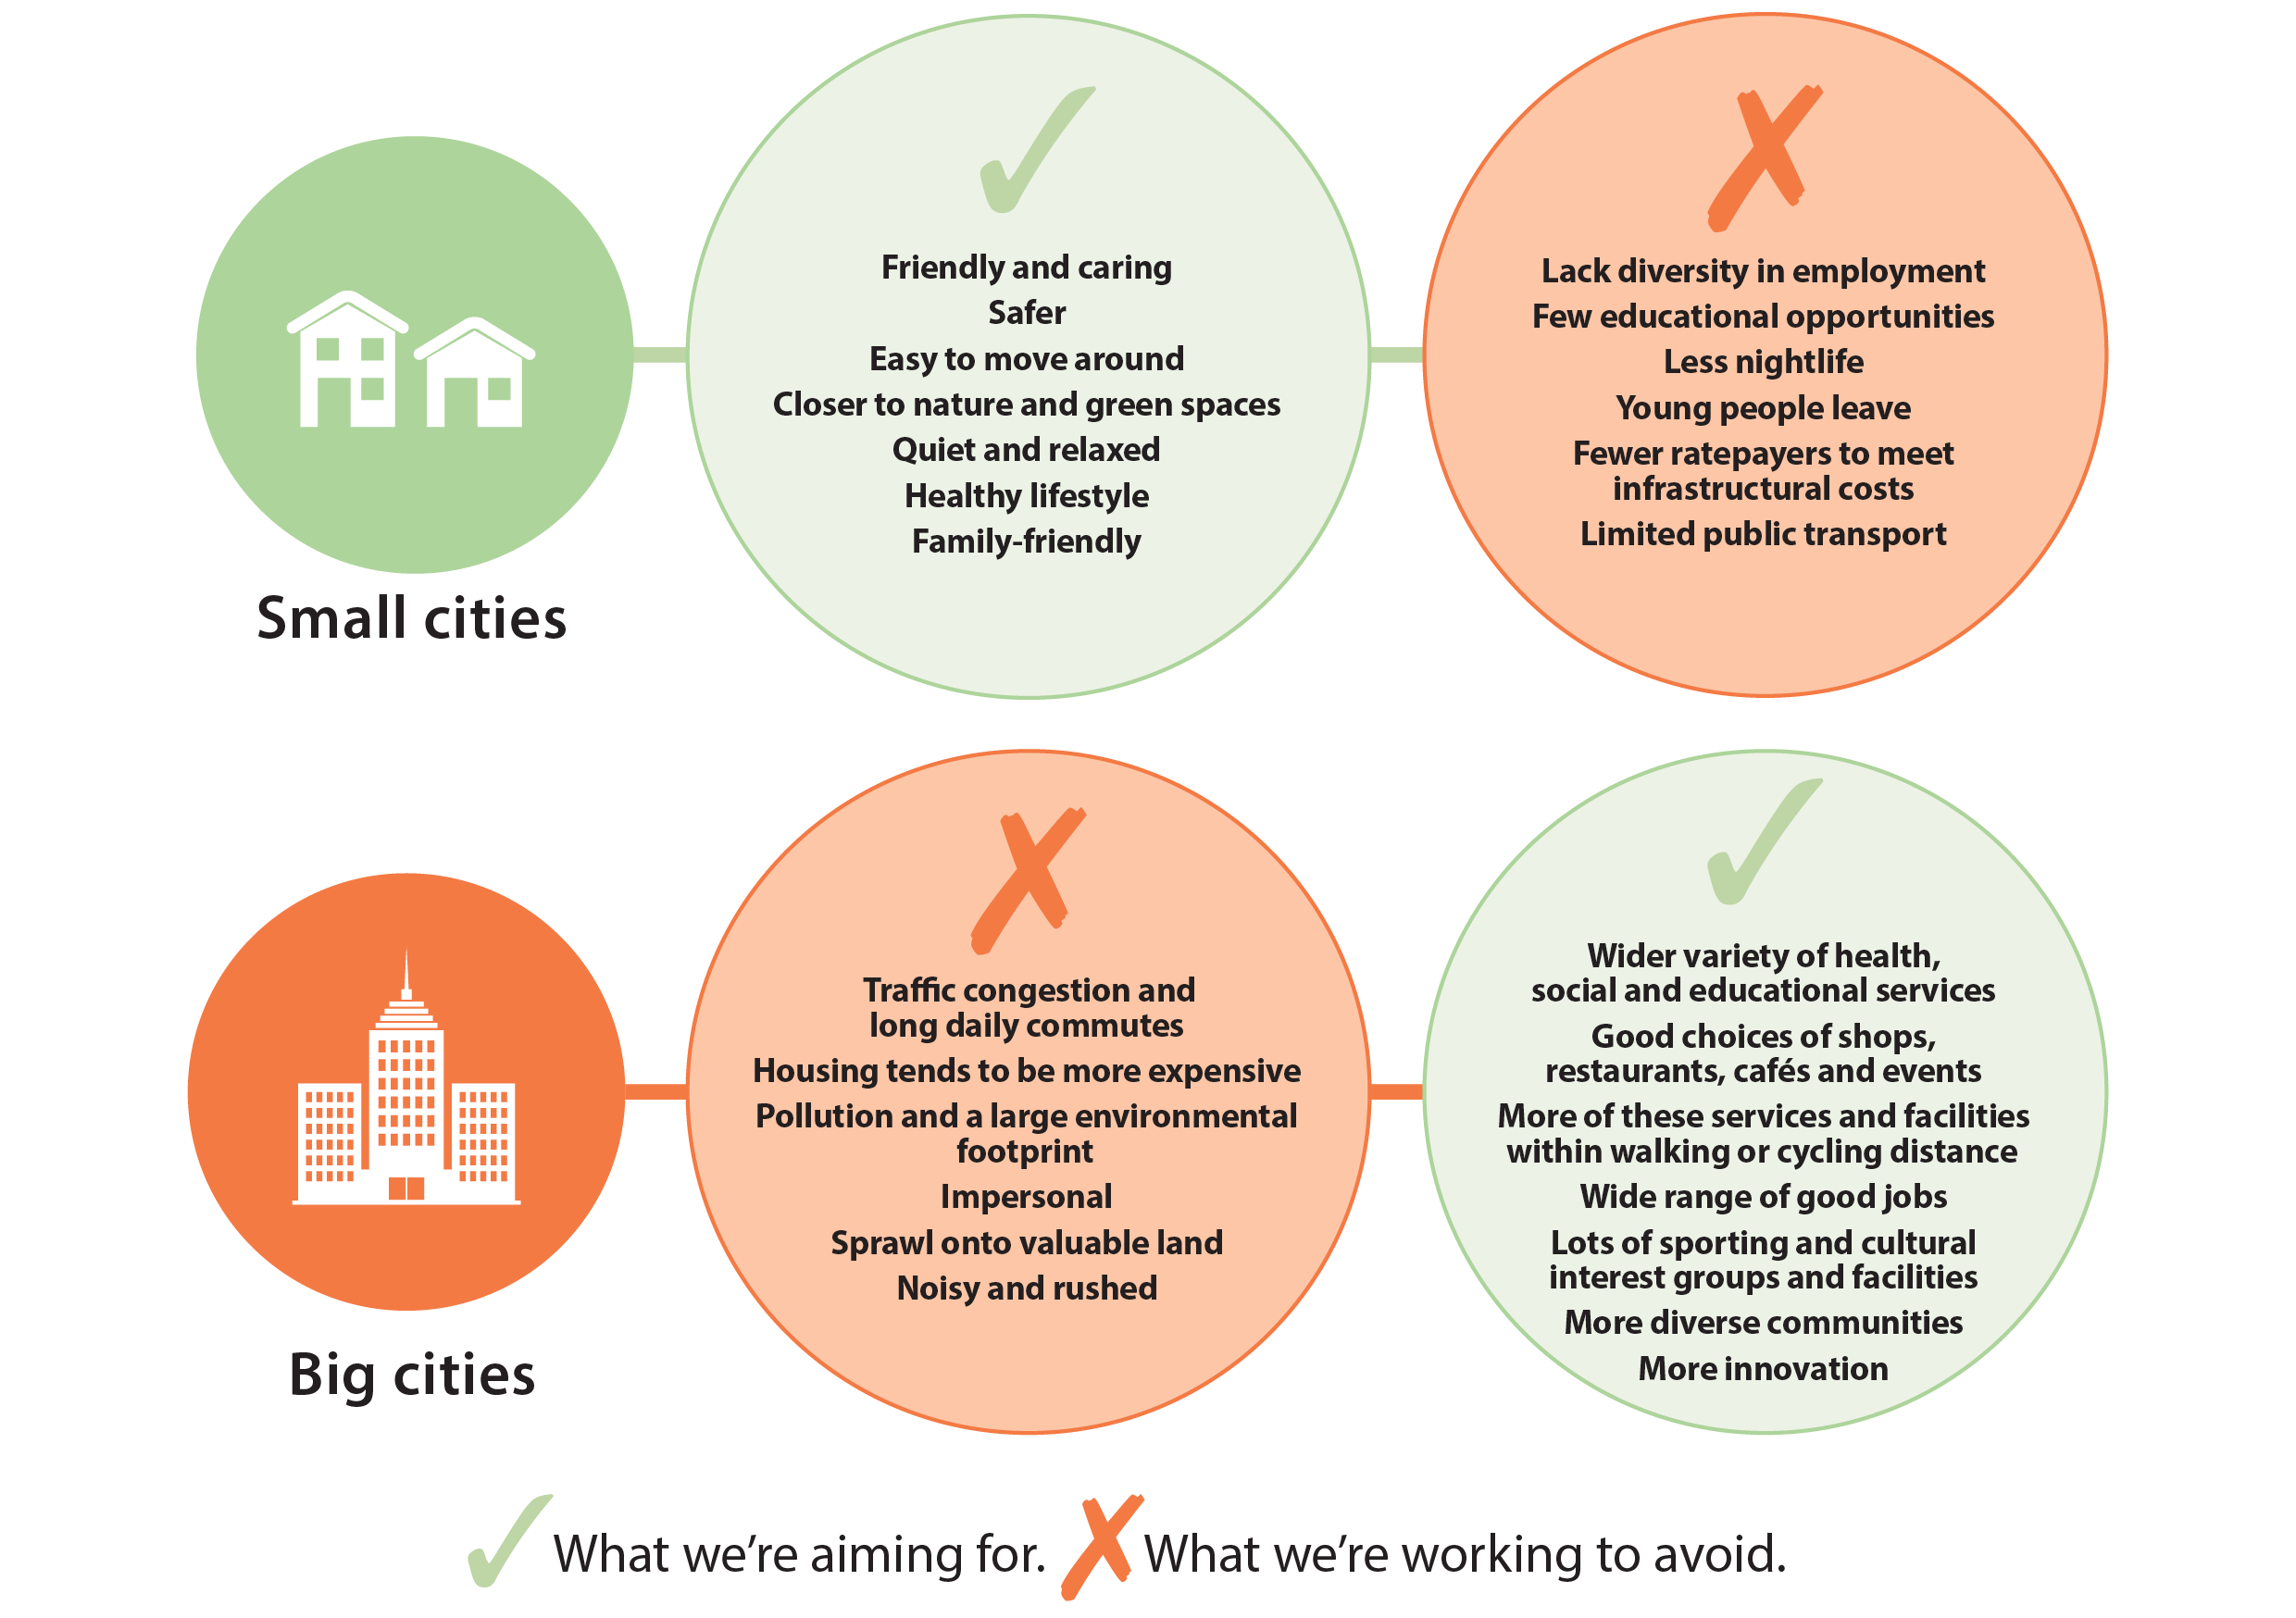 Infograph shows what the Council is aiming for and working to avoid.